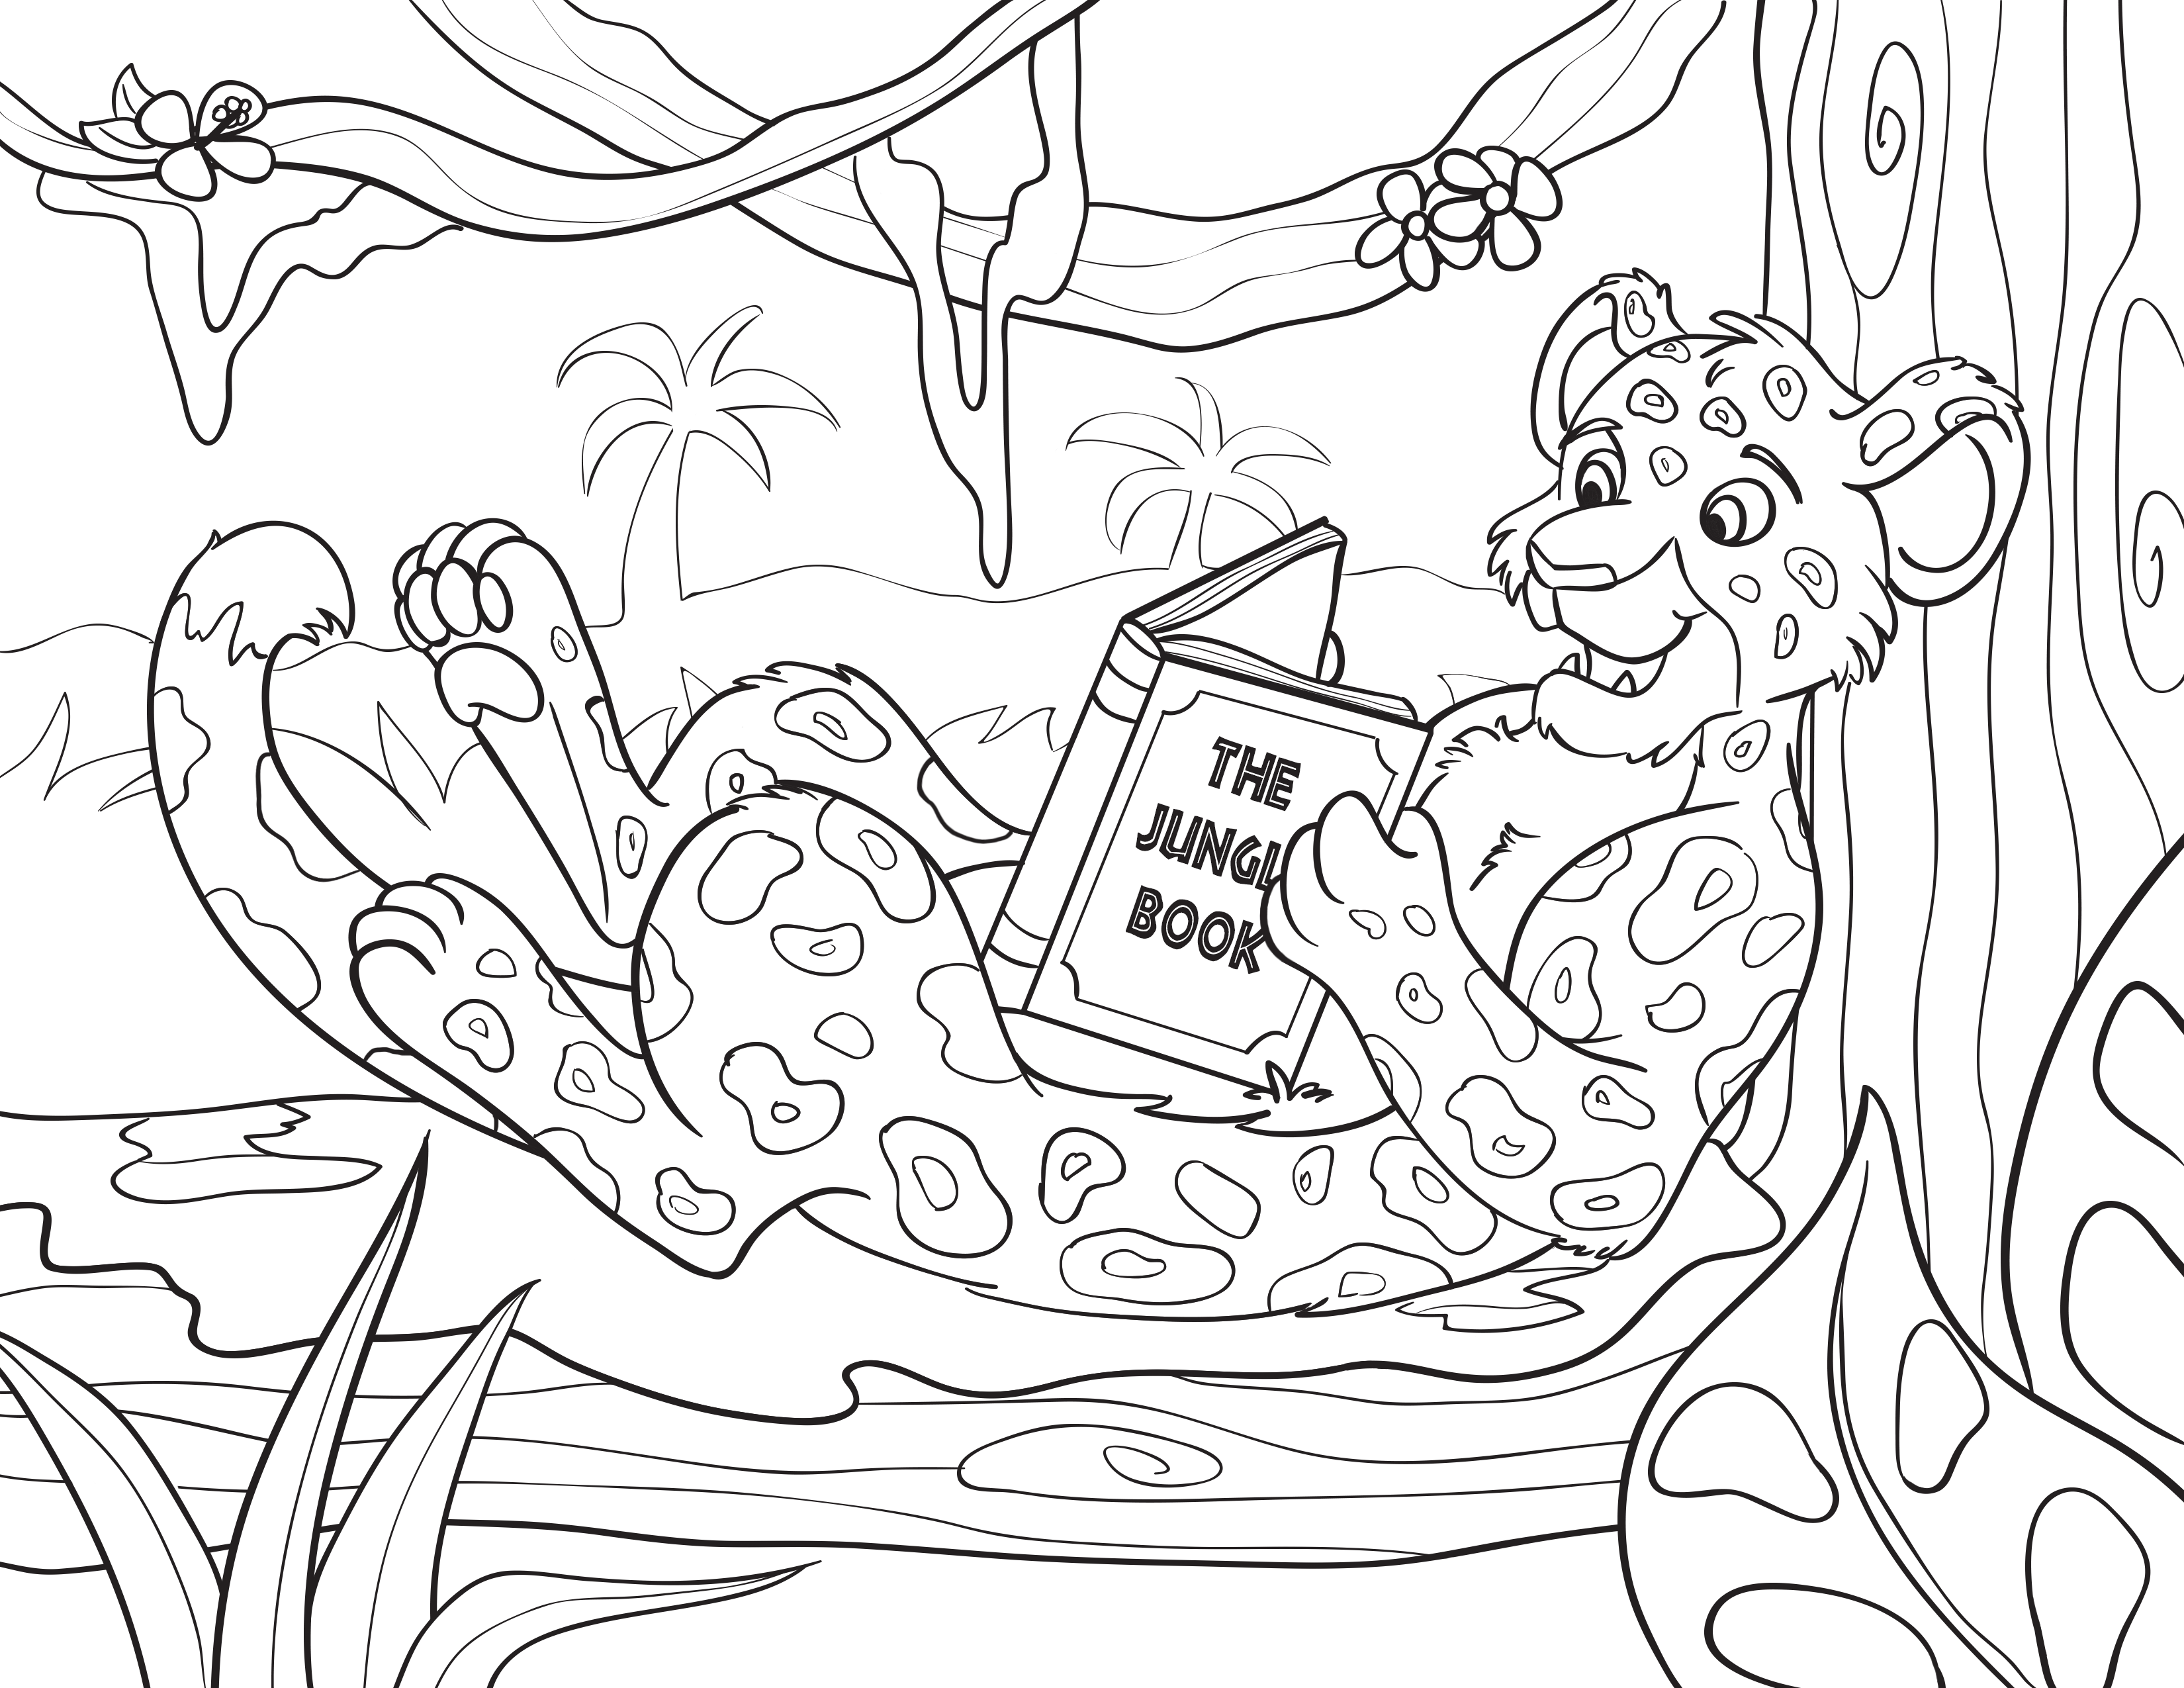 austin powers coloring pages - photo#6